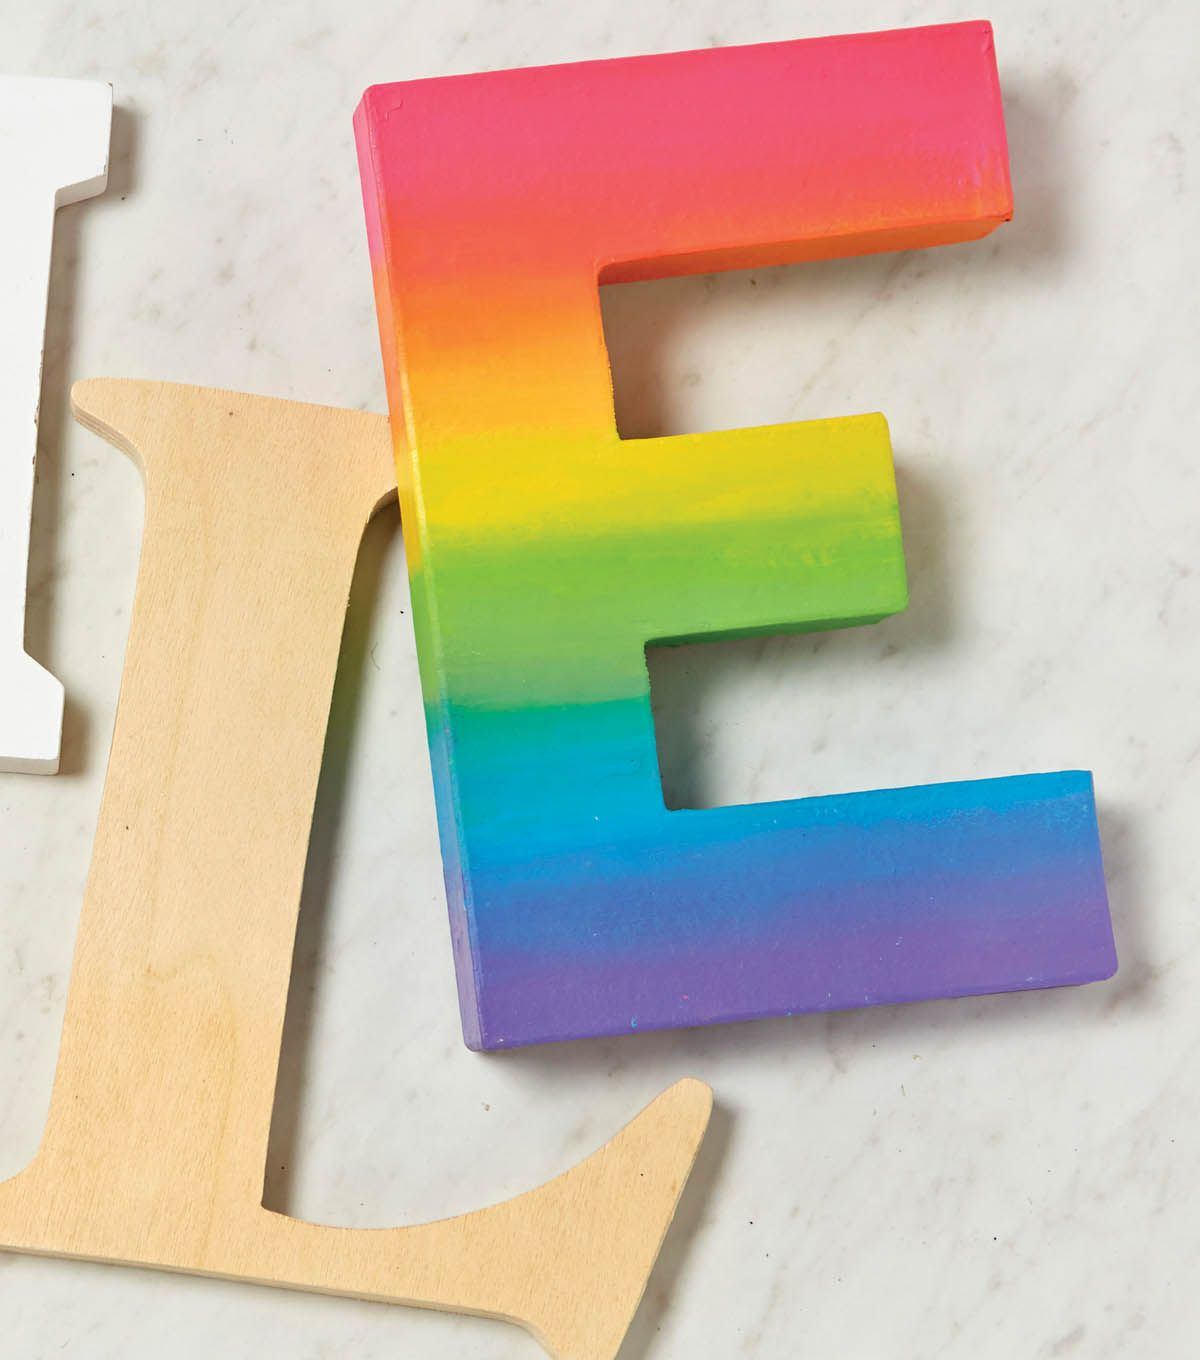 Ombre Painted Letter Joann Jo Ann Letter Standee Diy Painting Wooden Letters Painted Wood Letters